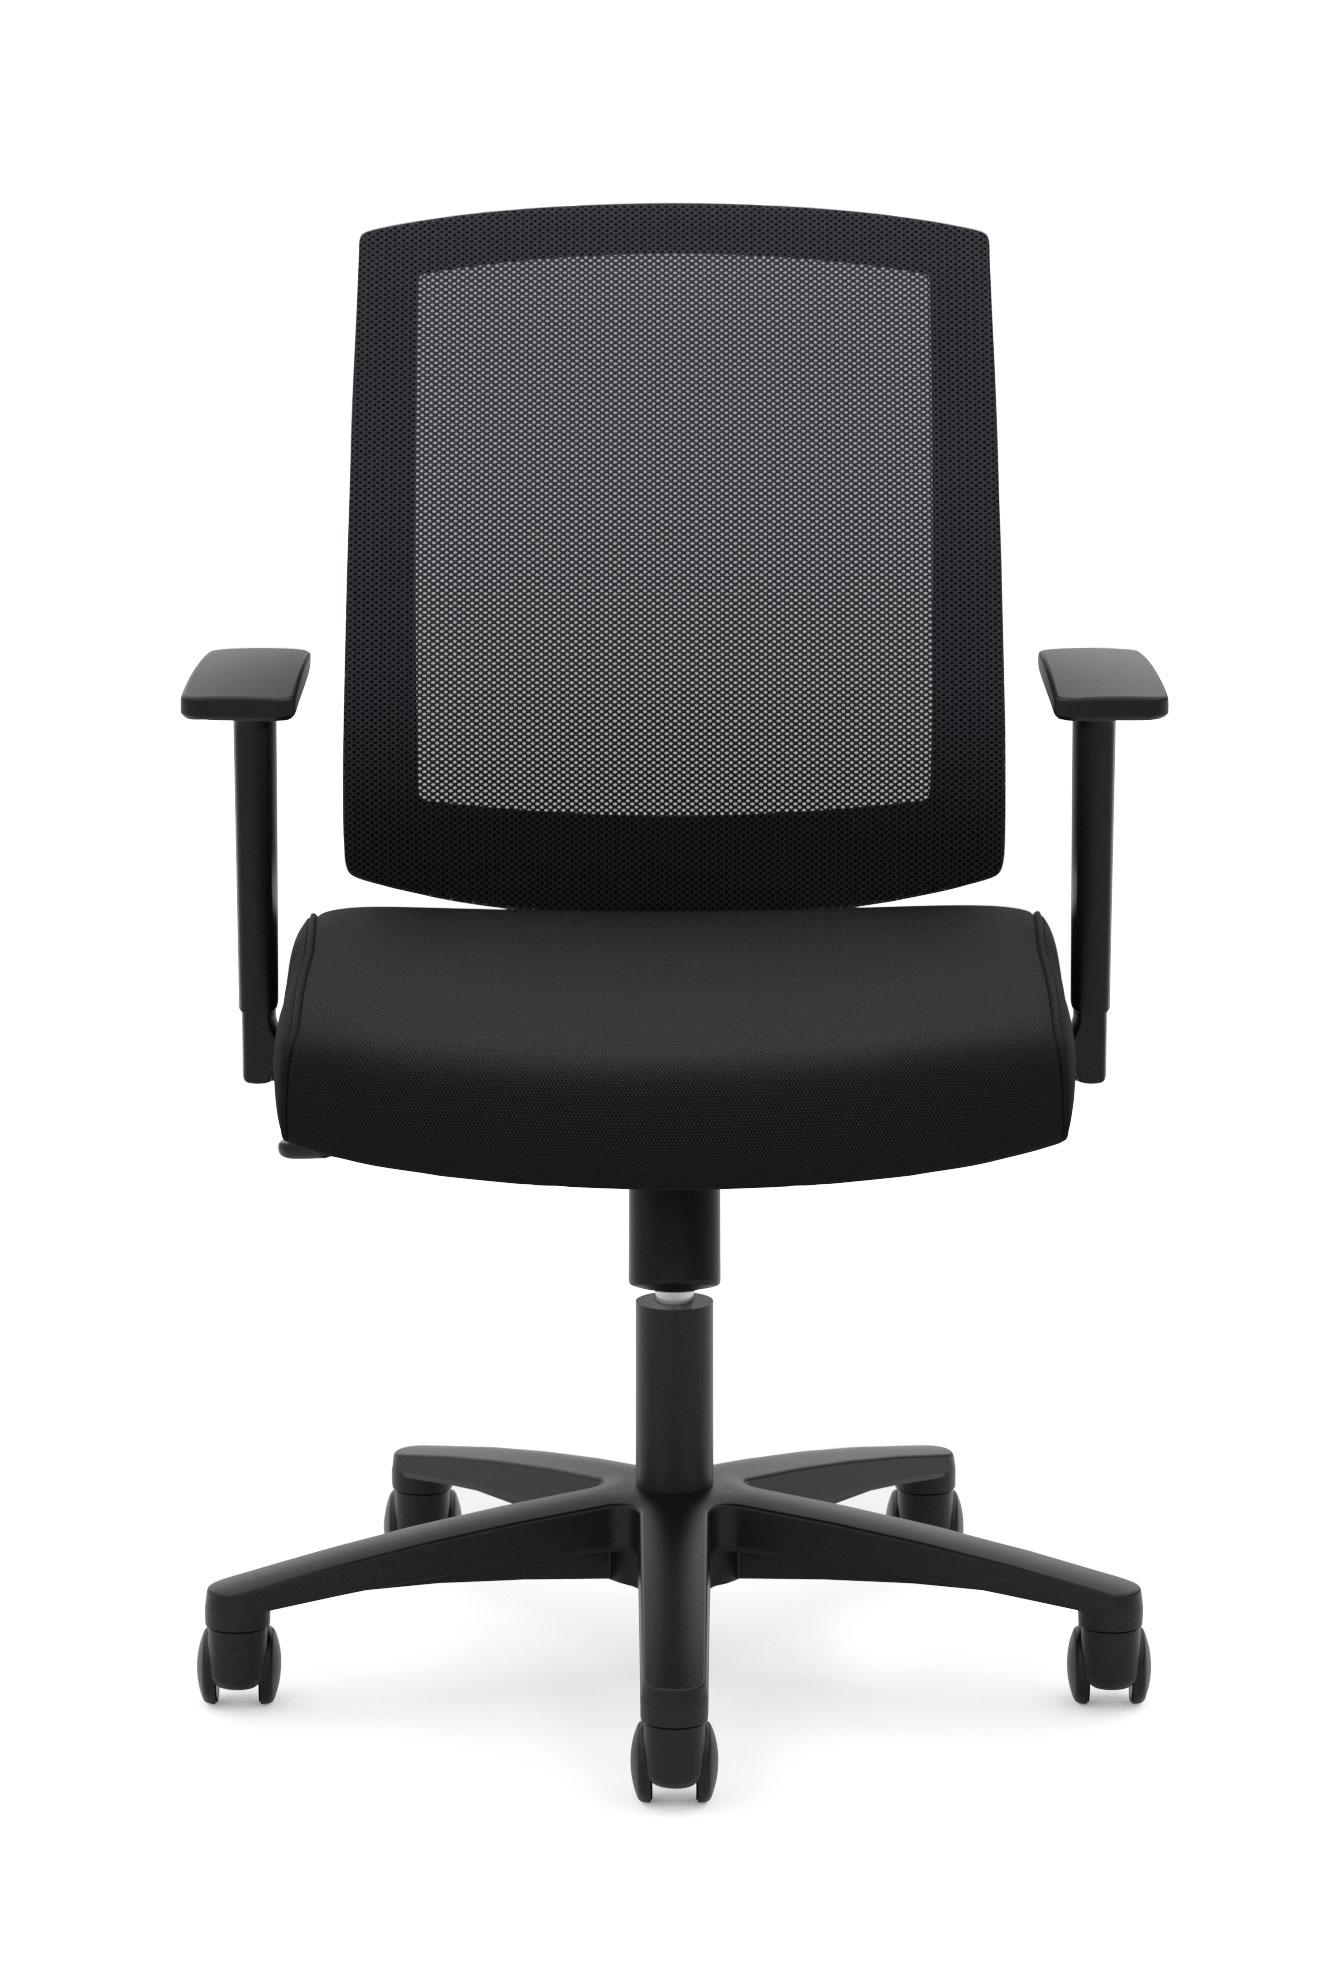 Hon Chairs Amazon Basyx By Hon Hvl511 Mid Back Task Chair Black